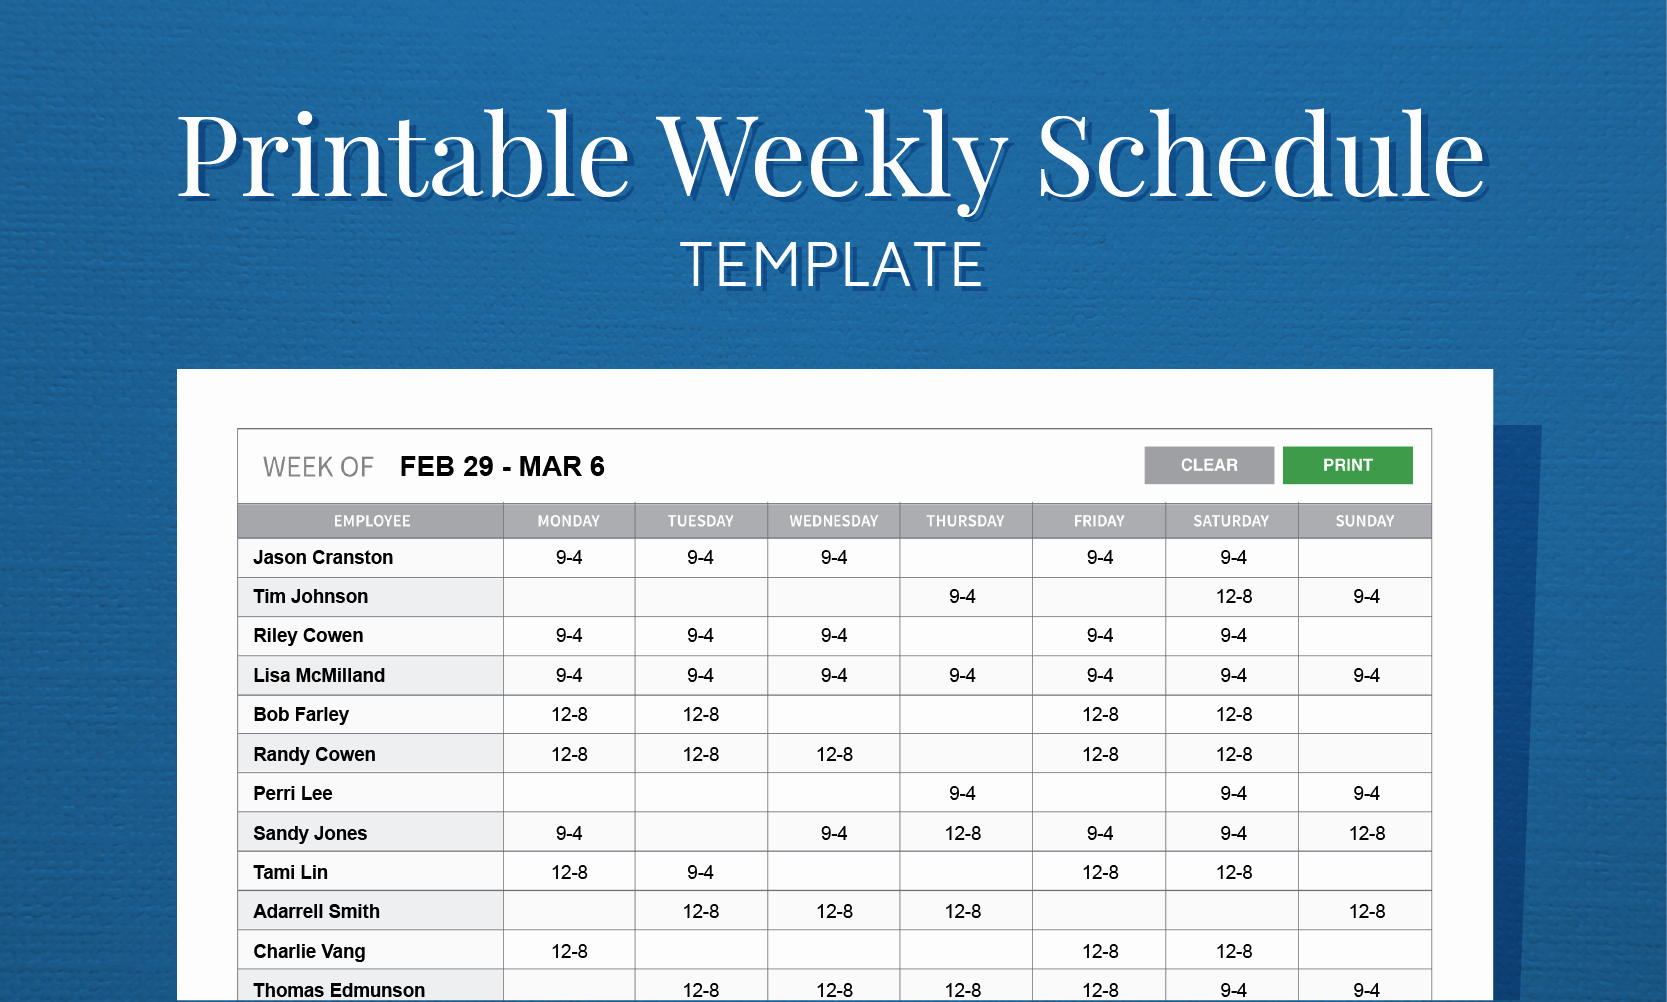 Weekly Employee Schedule Template Inspirational Free Printable Work Schedule Template for Employee